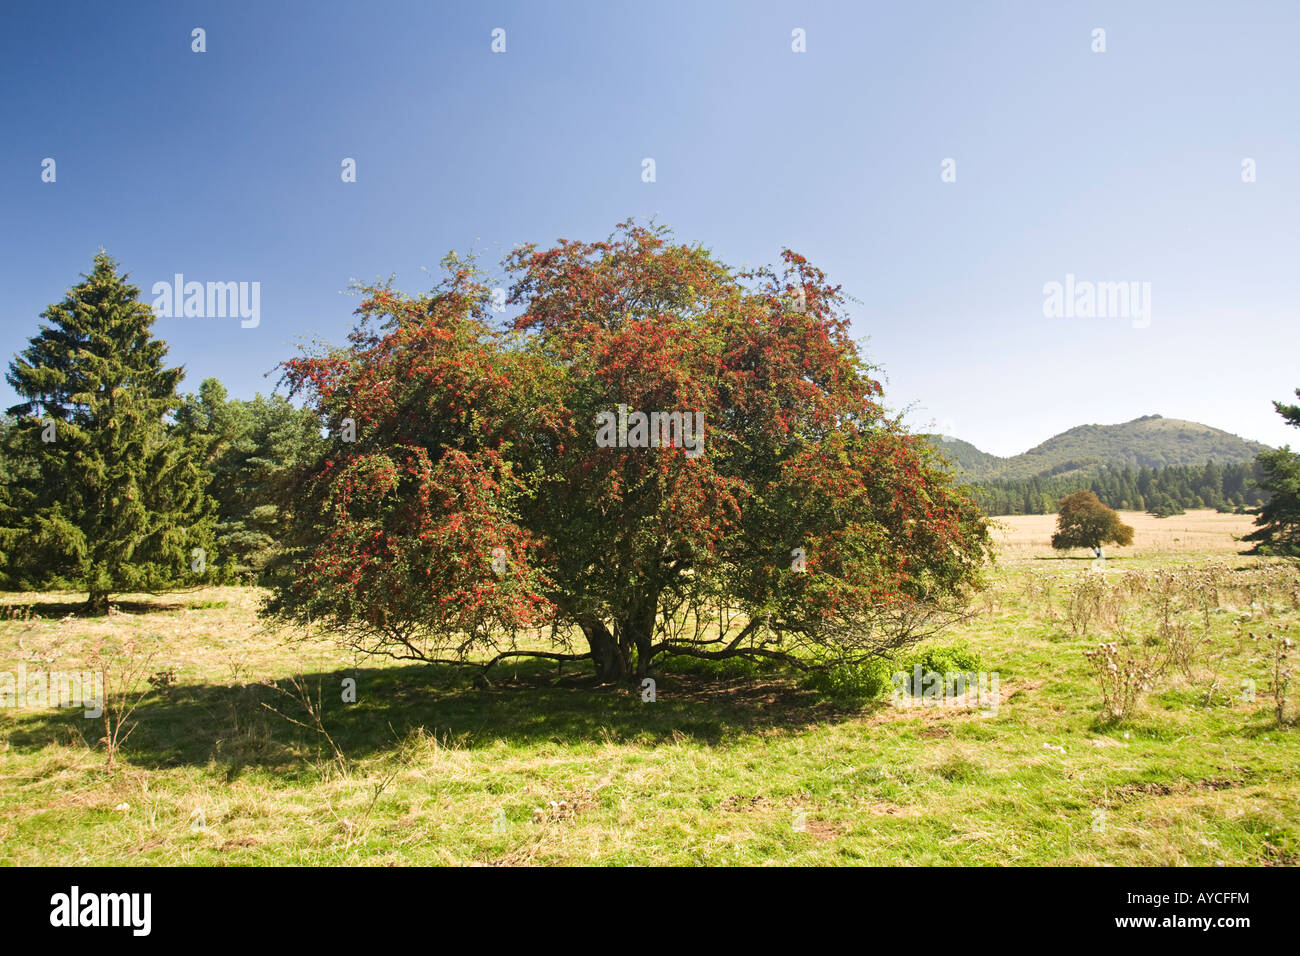 The hawthorn (Crataegus monogyna) in fructification. Aubépine monogyne (Crataegus monogyna) en fruits. - Stock Image